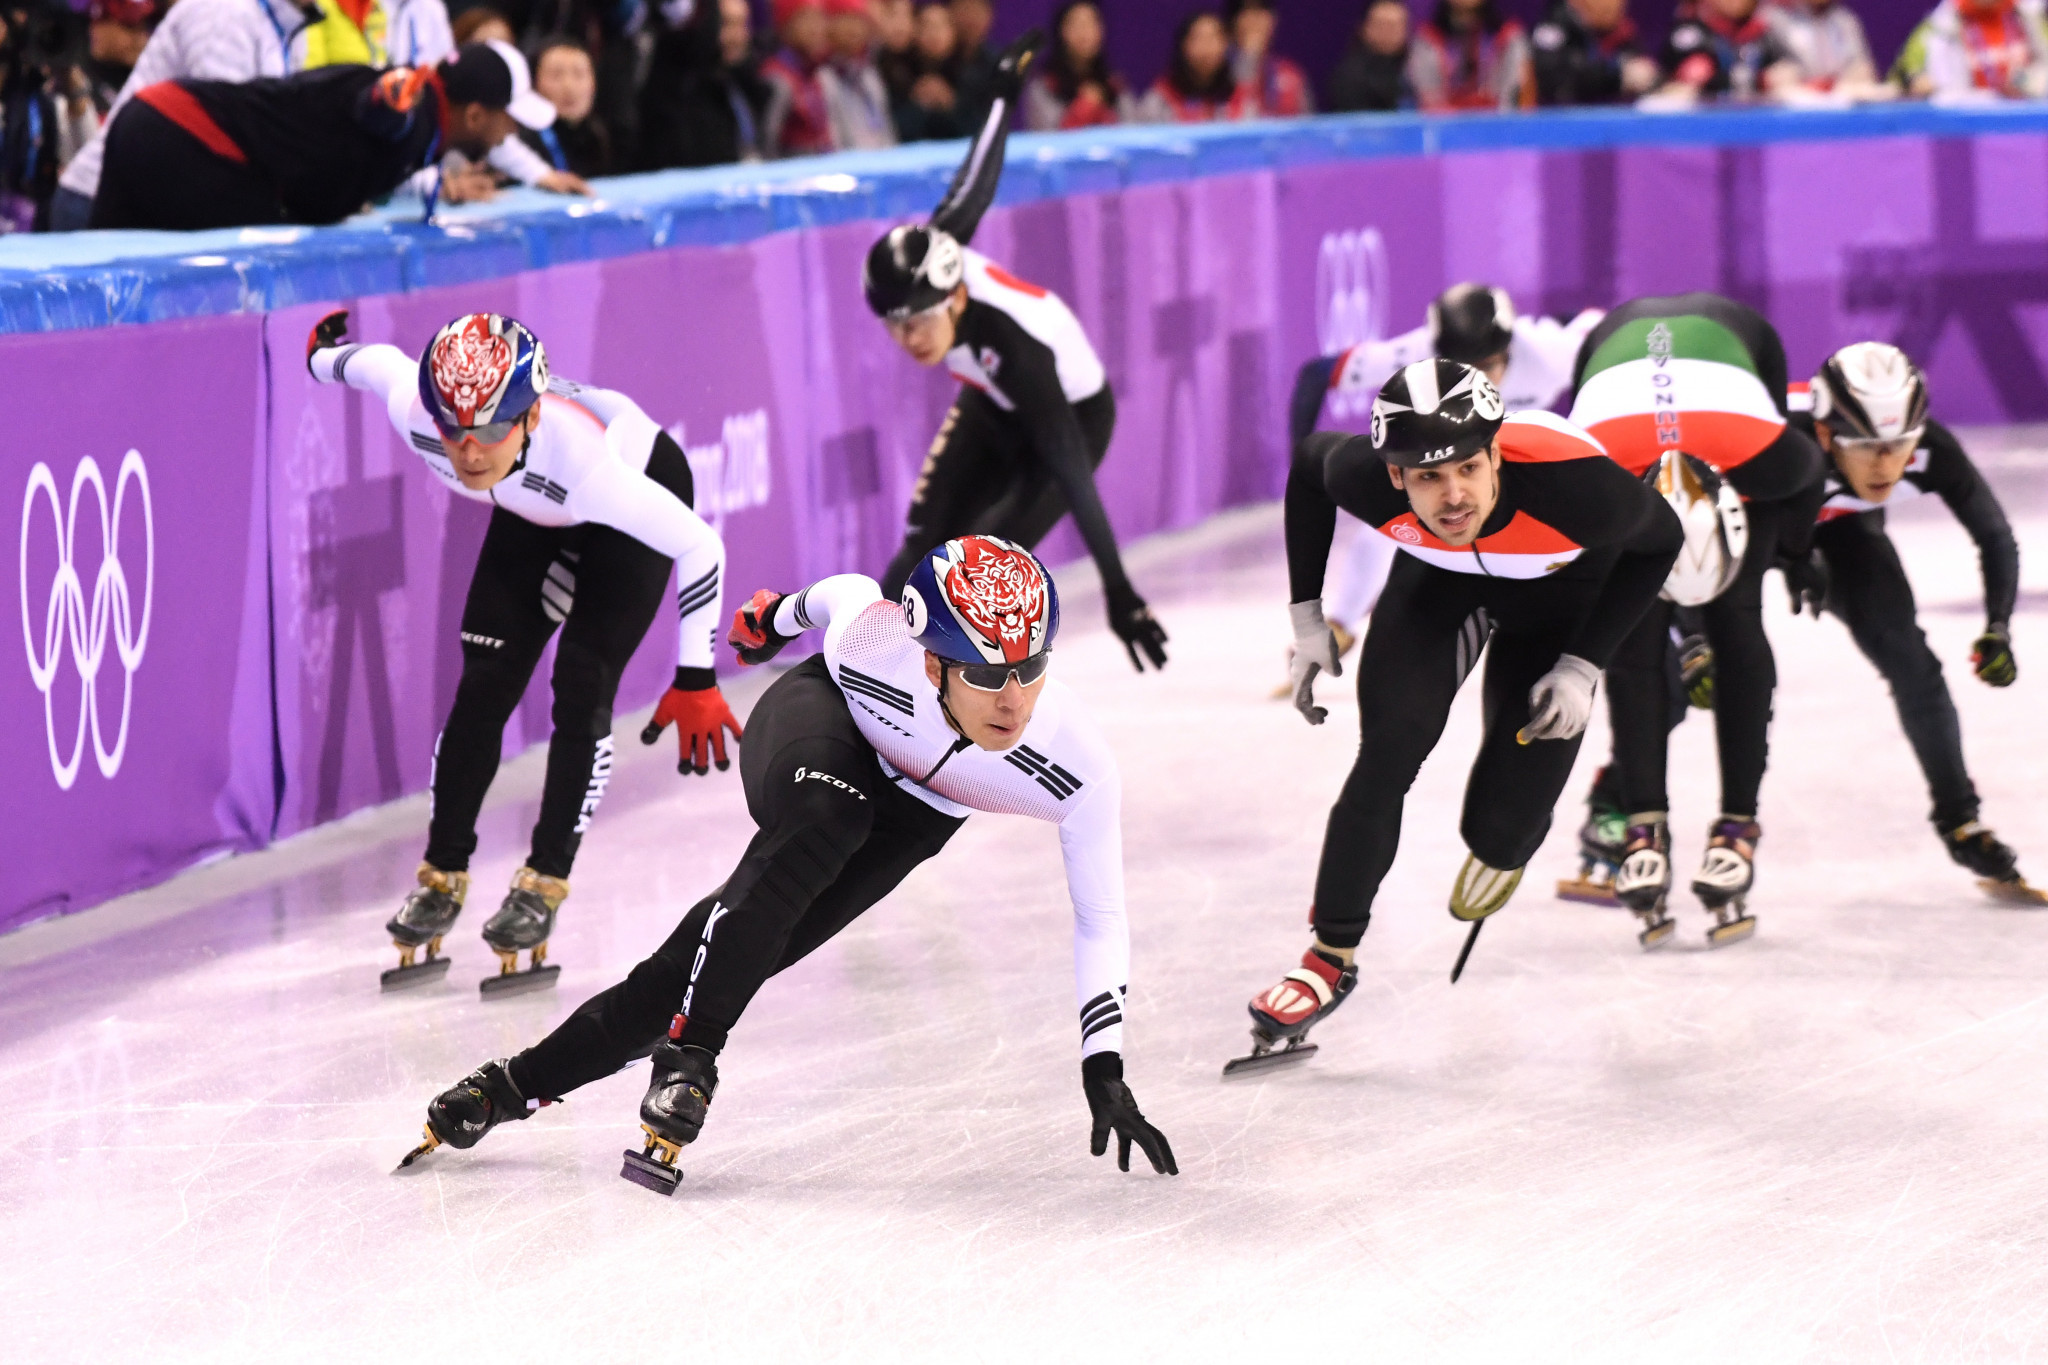 There were thrills and spills in the short-track speed skating relay today ©Getty Images